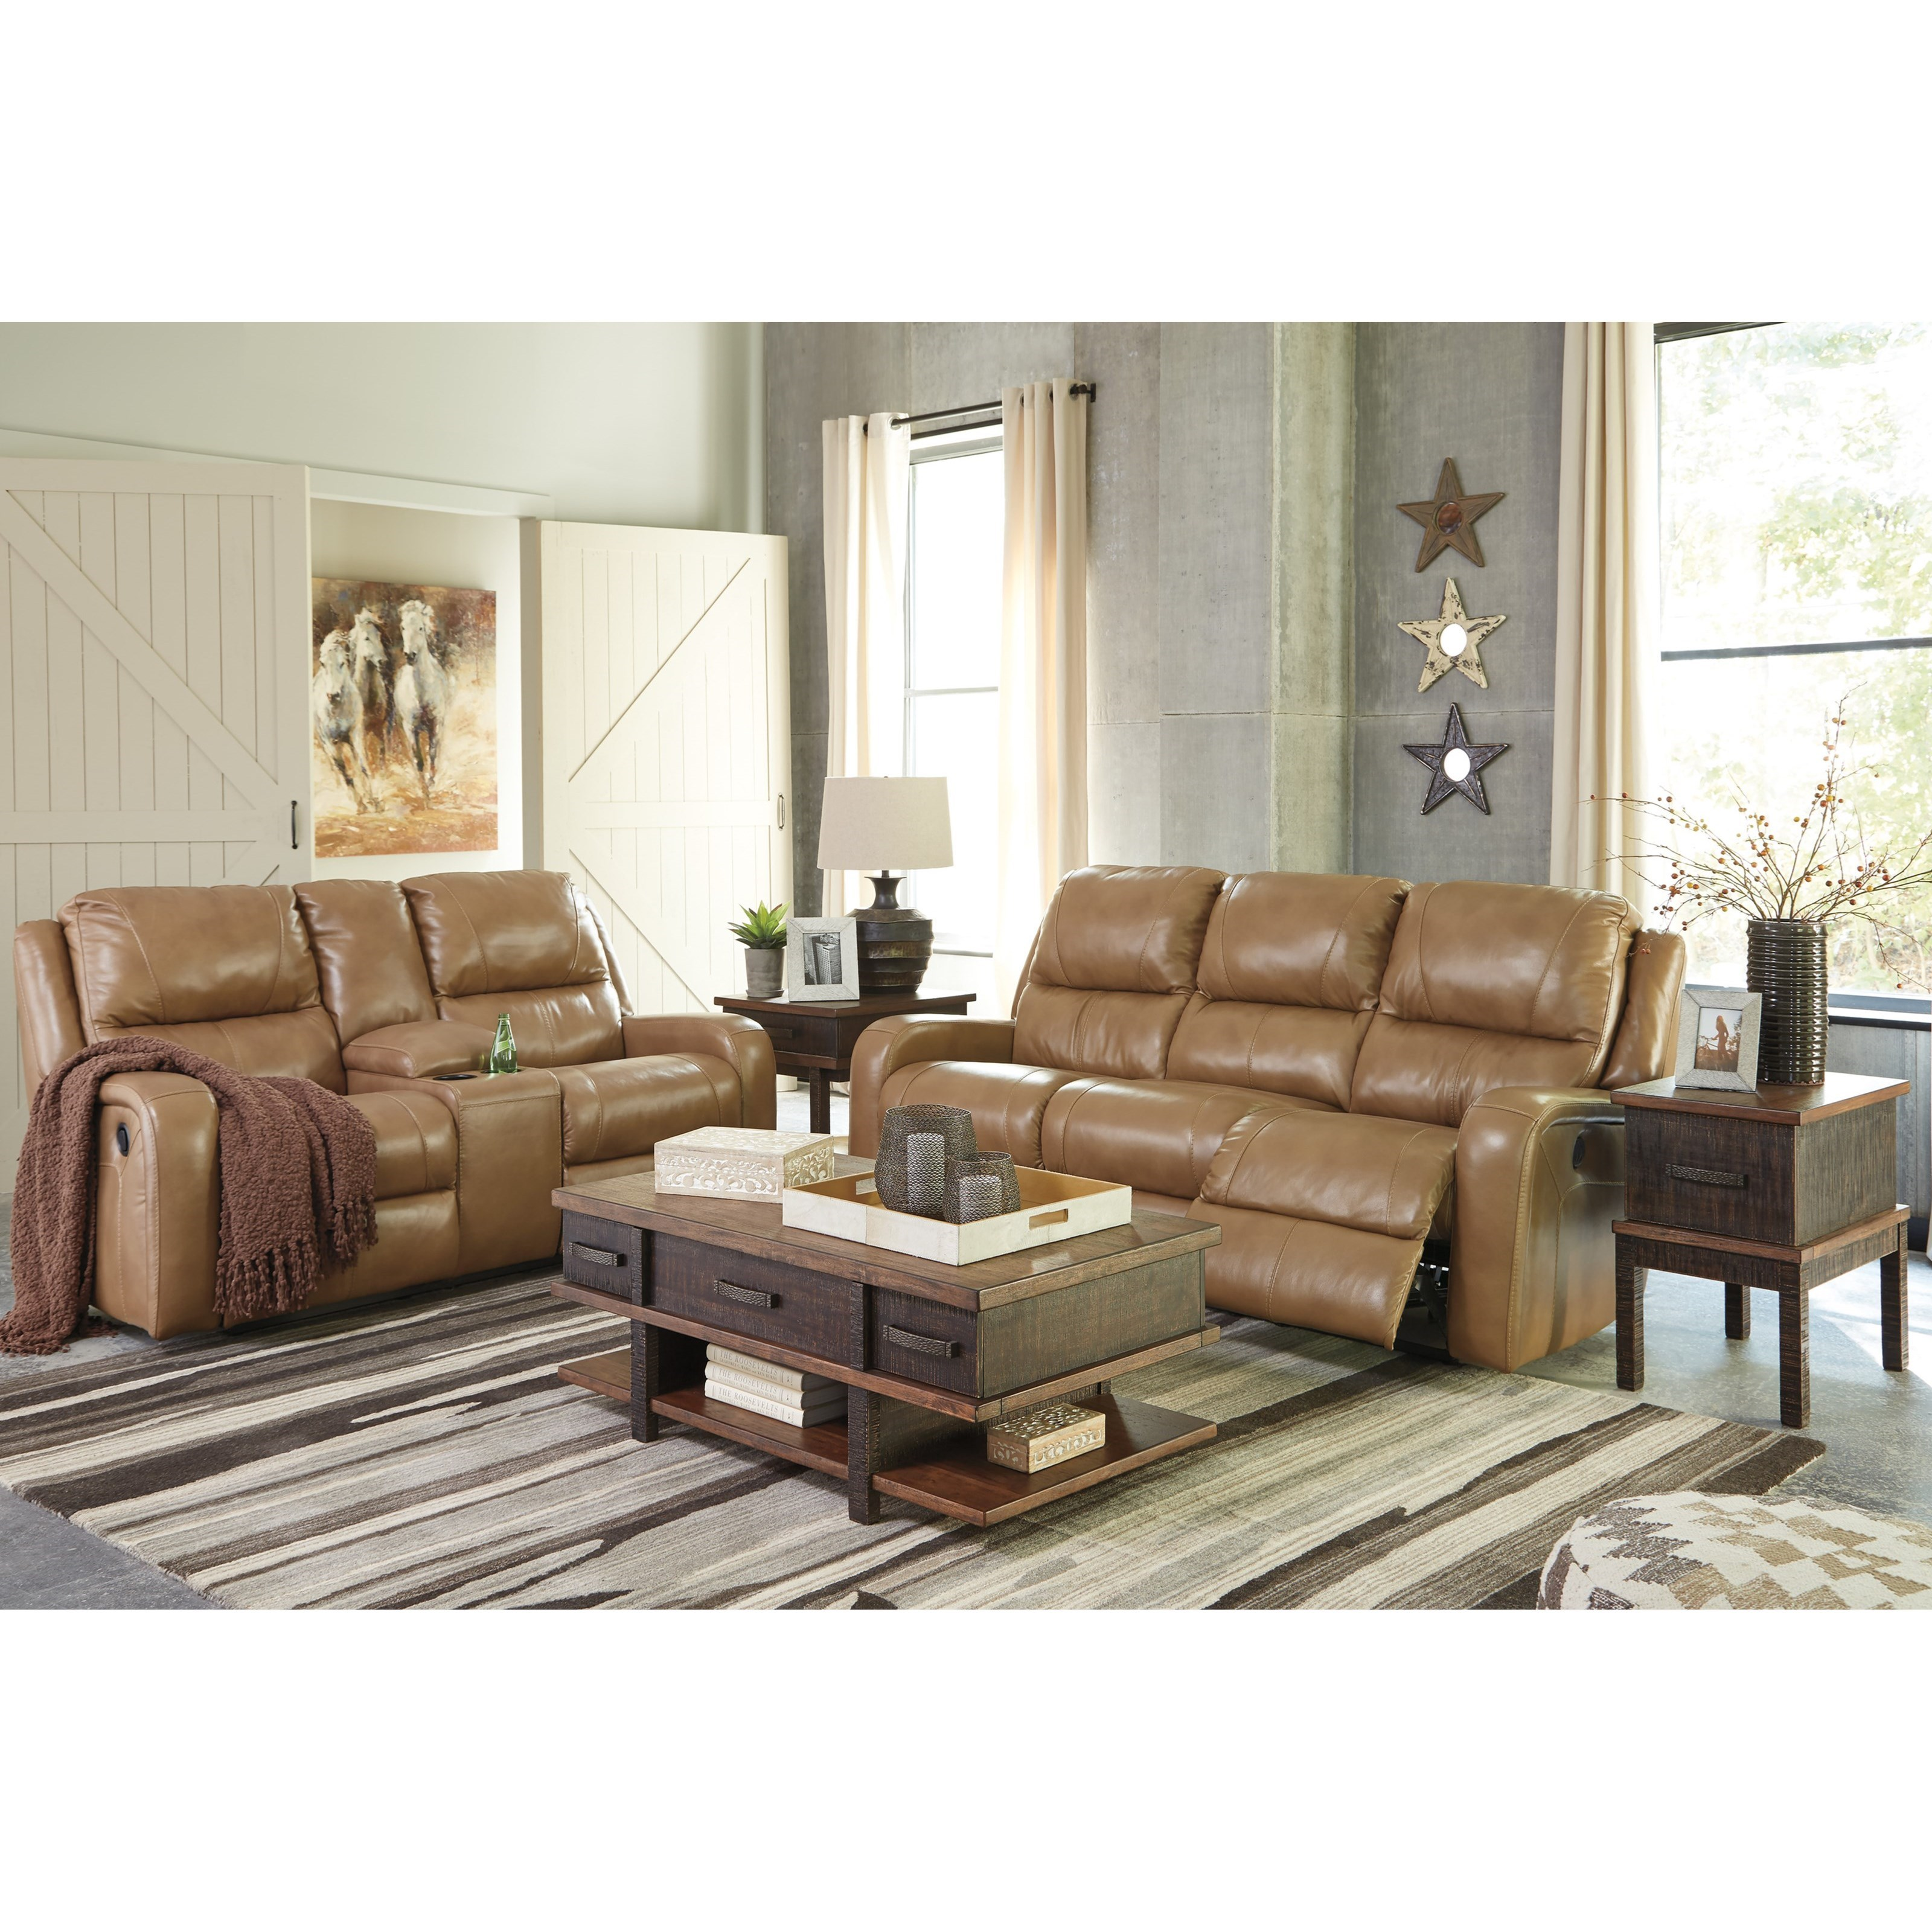 Ashley Signature Design Roogan U6070196 Contemporary Power Reclining Love Seat With Storage